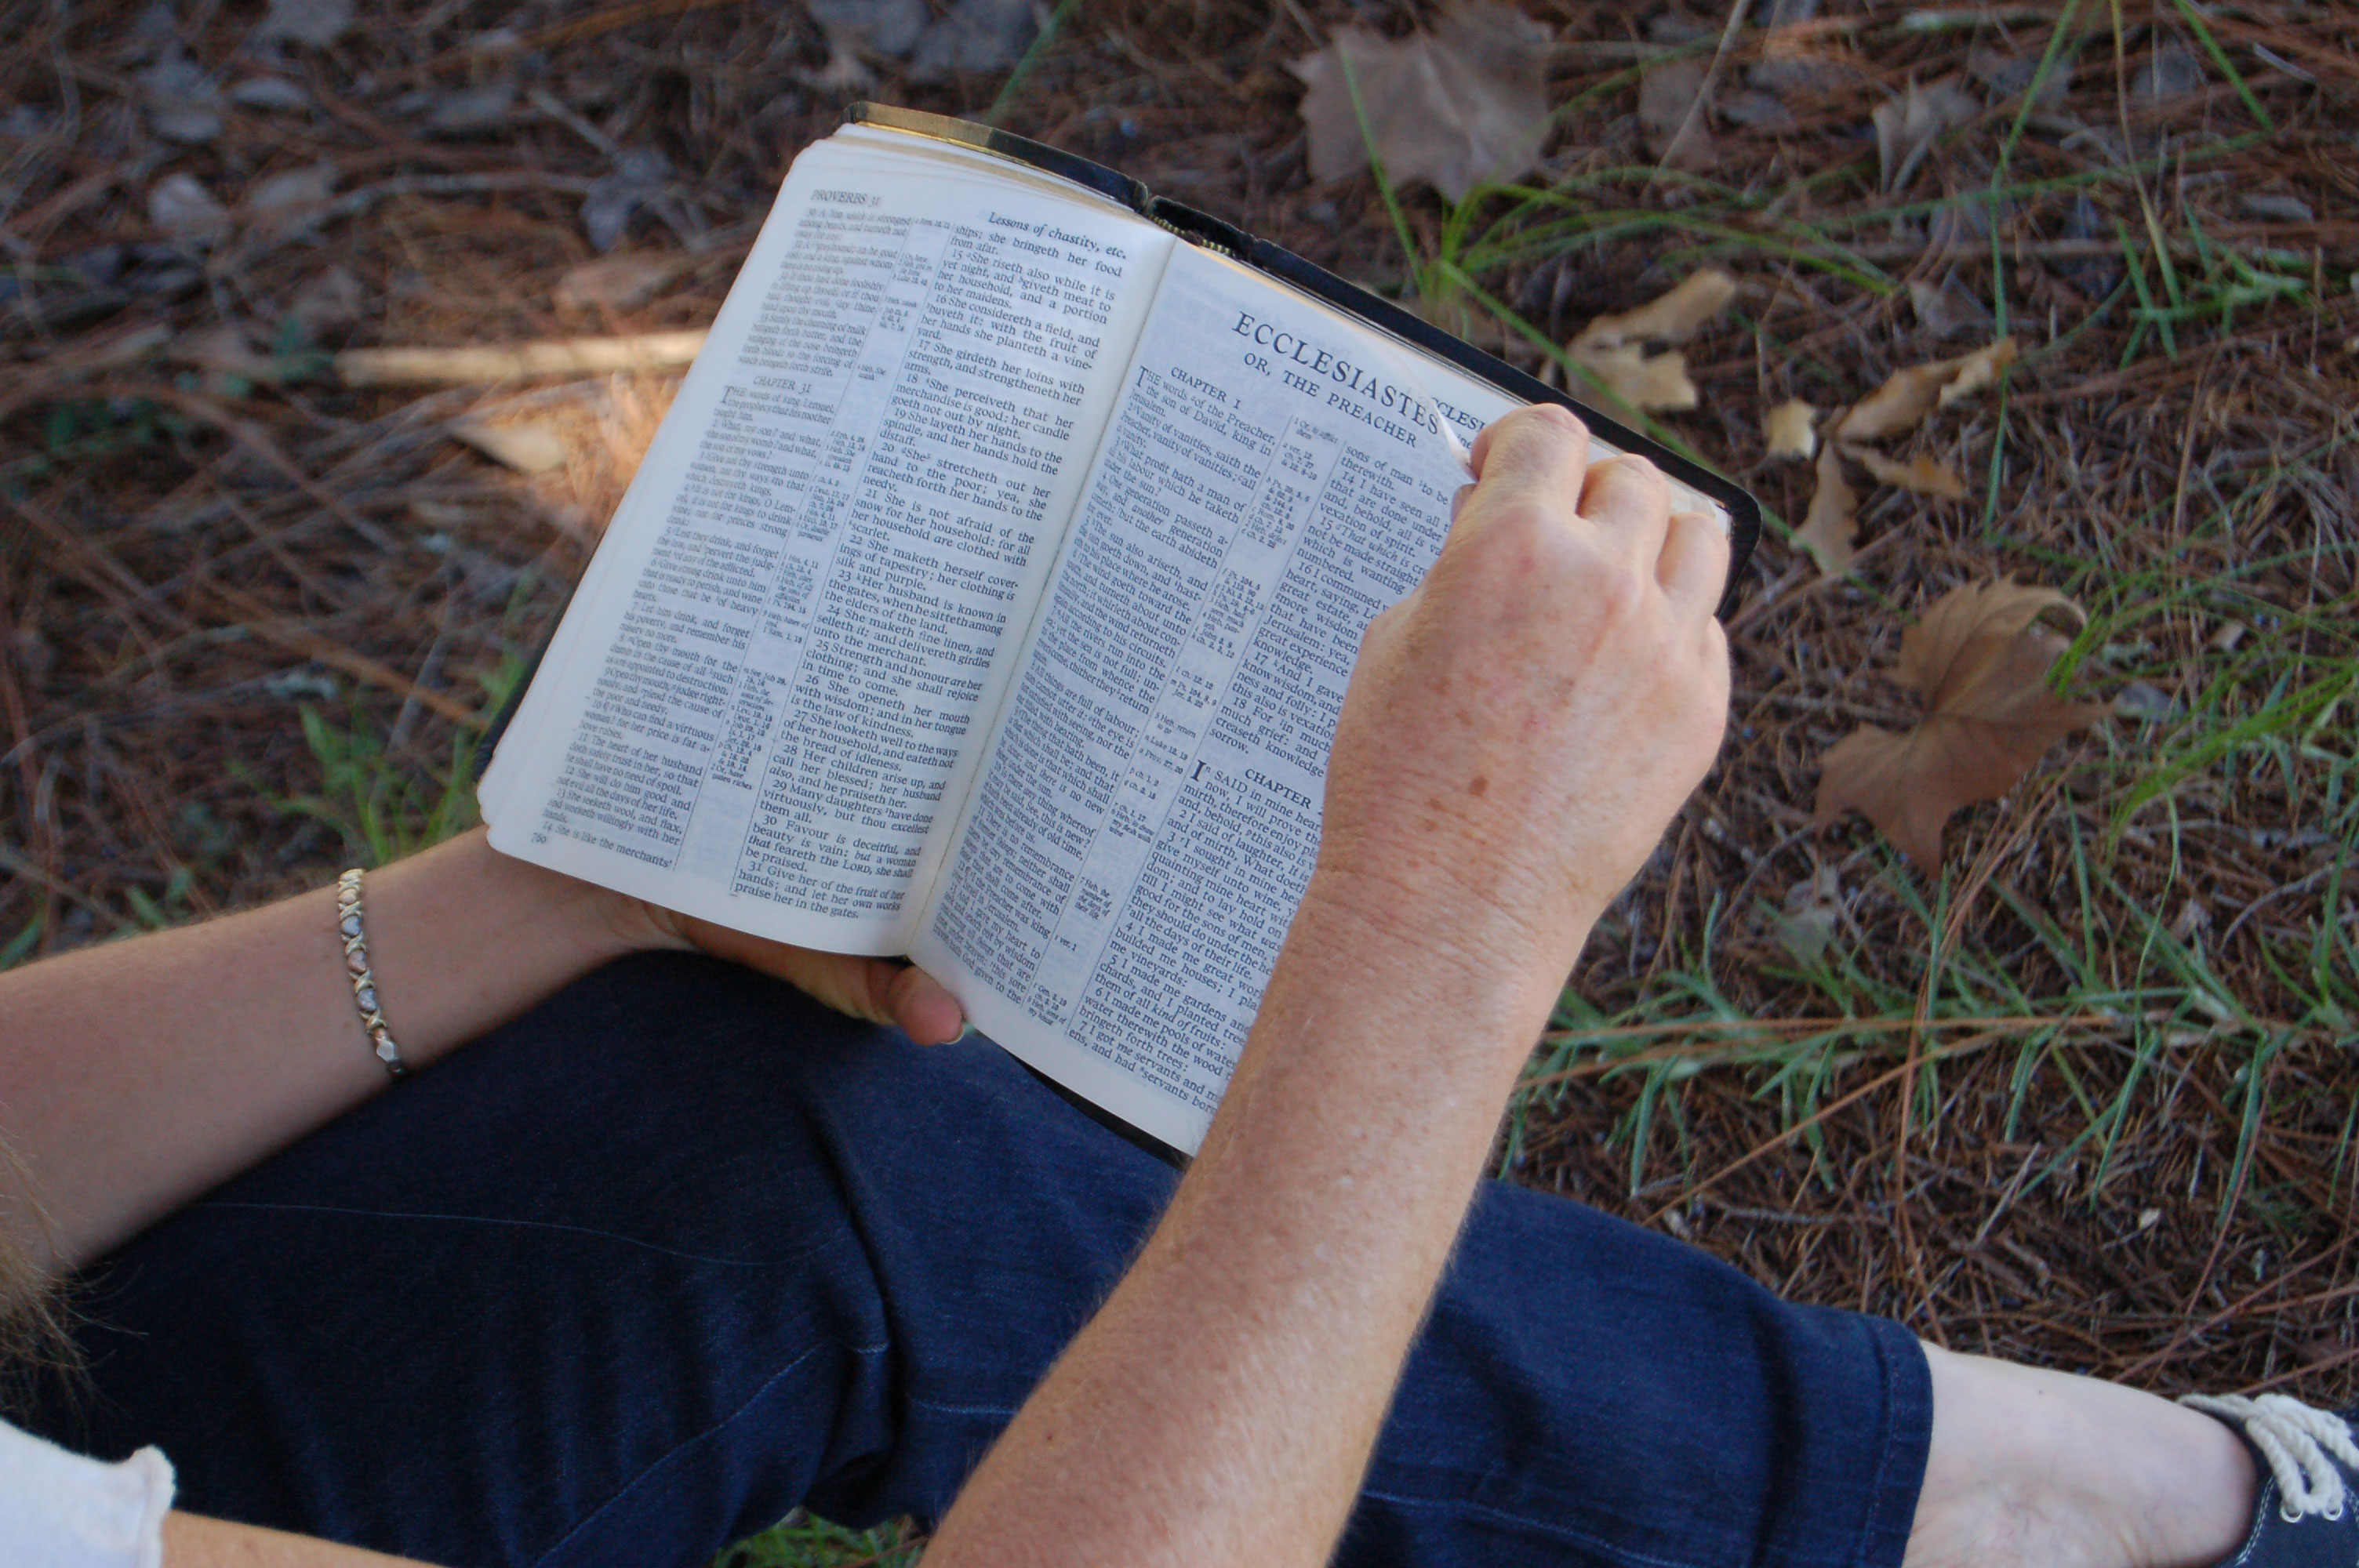 Christian Stock Photos by Linda Bateman - Woman Reading Bible Open to Ecclesiastes and Turning Page